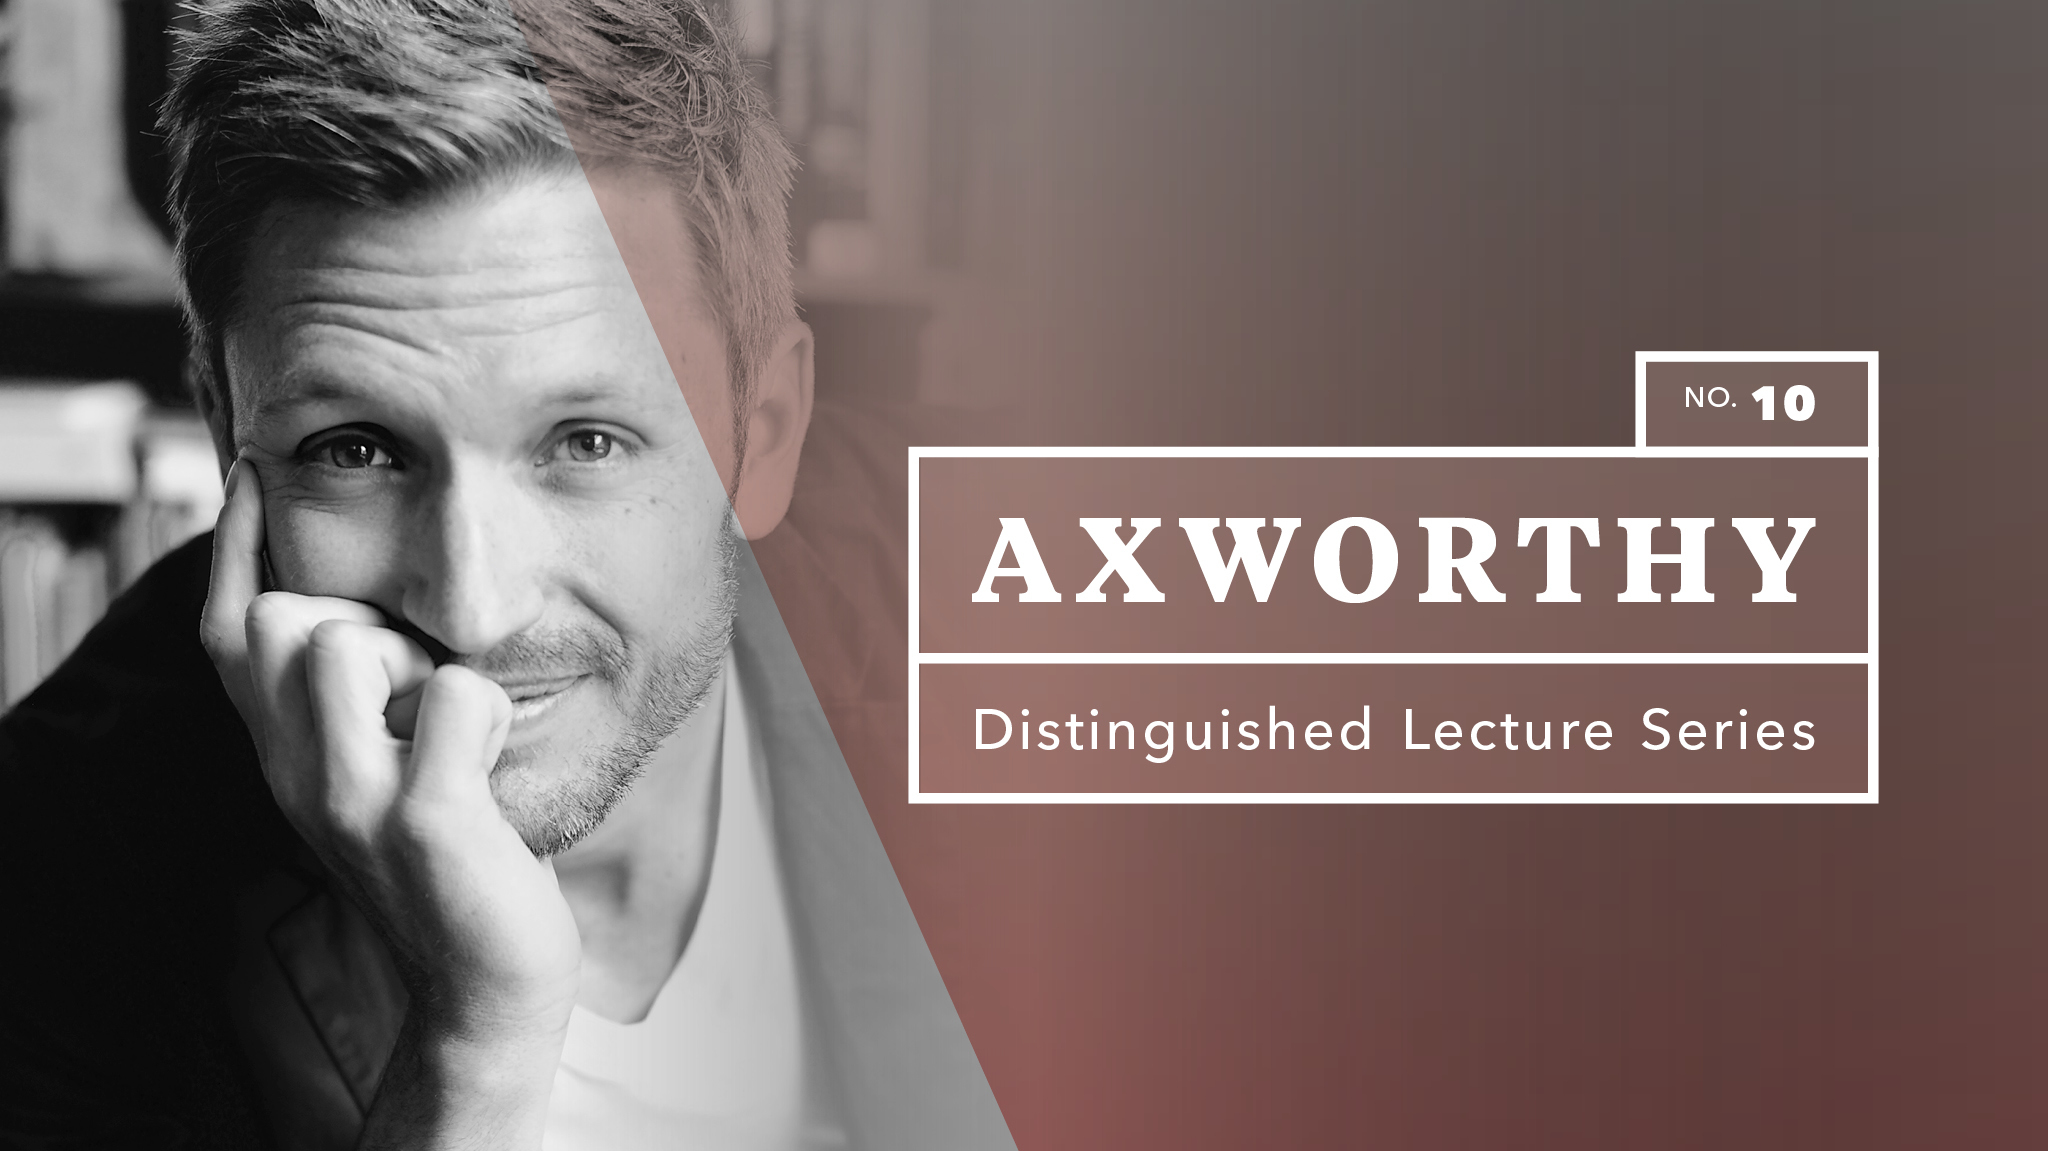 Axworthy Lecture: Jason Hickel to speak on 'Imperialism, Ecological Breakdown, and the Degrowth Imperative'